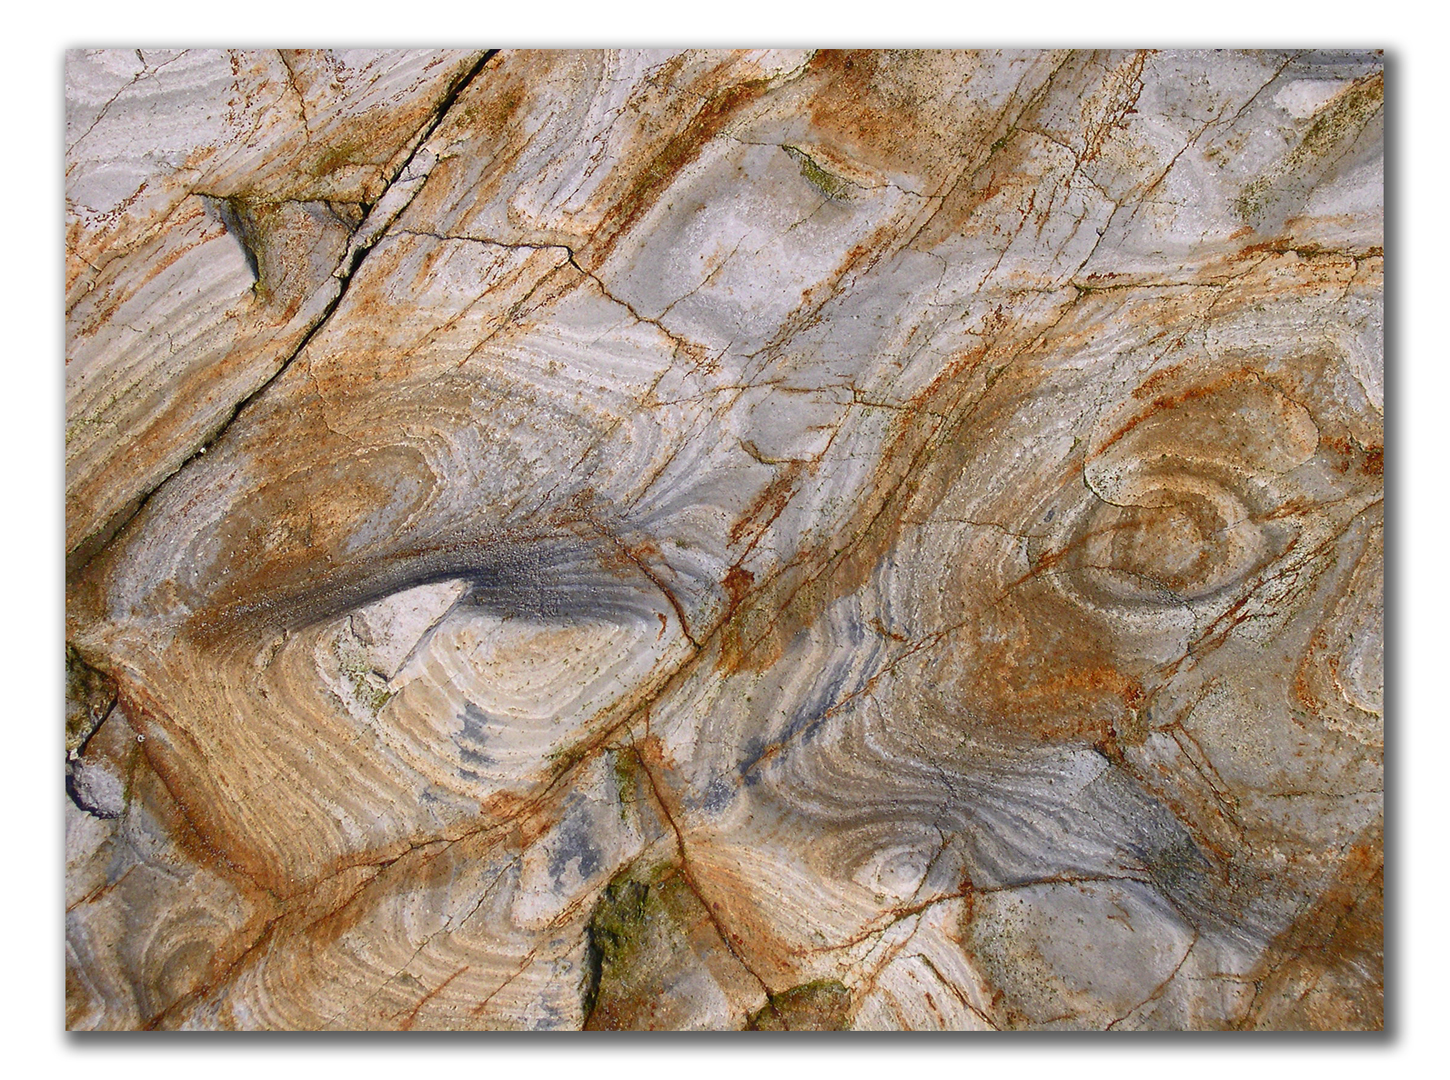 sedementary rocks wave-polished in sensuous curves